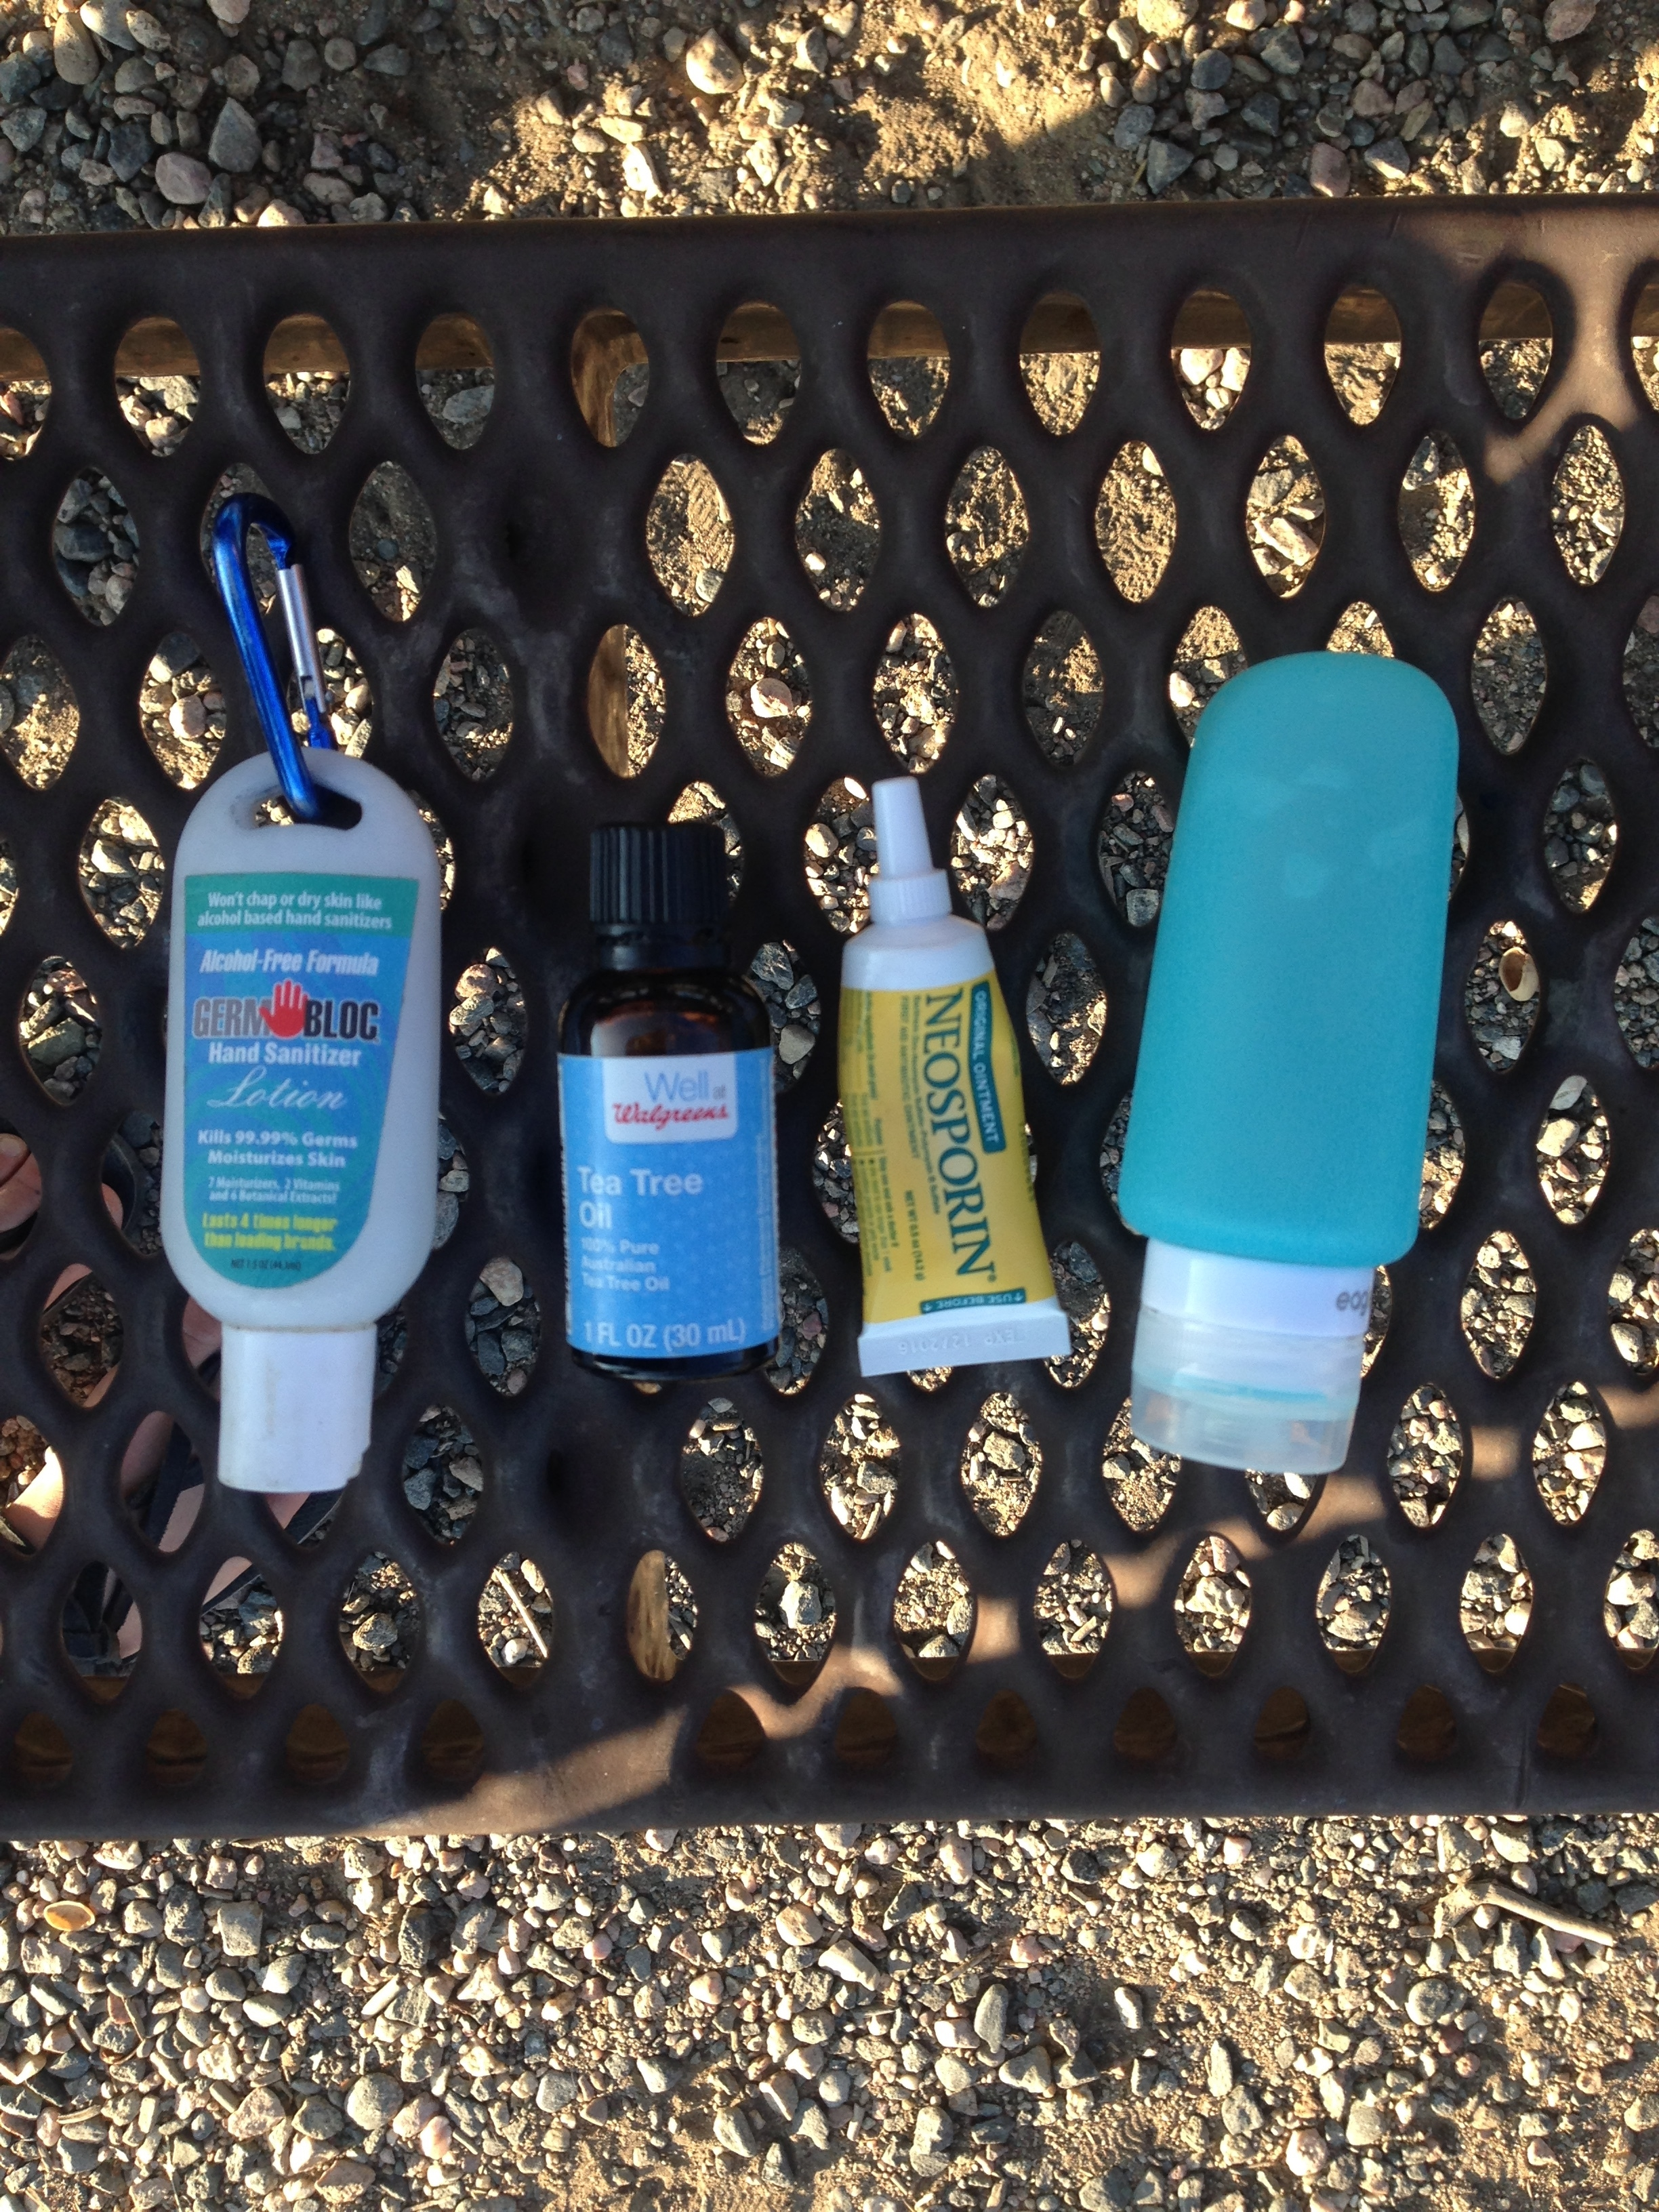 Alcohol based hand sanitizer works for other parts of the body in a pinch, tea tree oil and neosporine are good for saddle sores, and Dr. Bronner's (shown here in a soft bottle) is a good, mild, soap for cleaning yourself and your clothes.